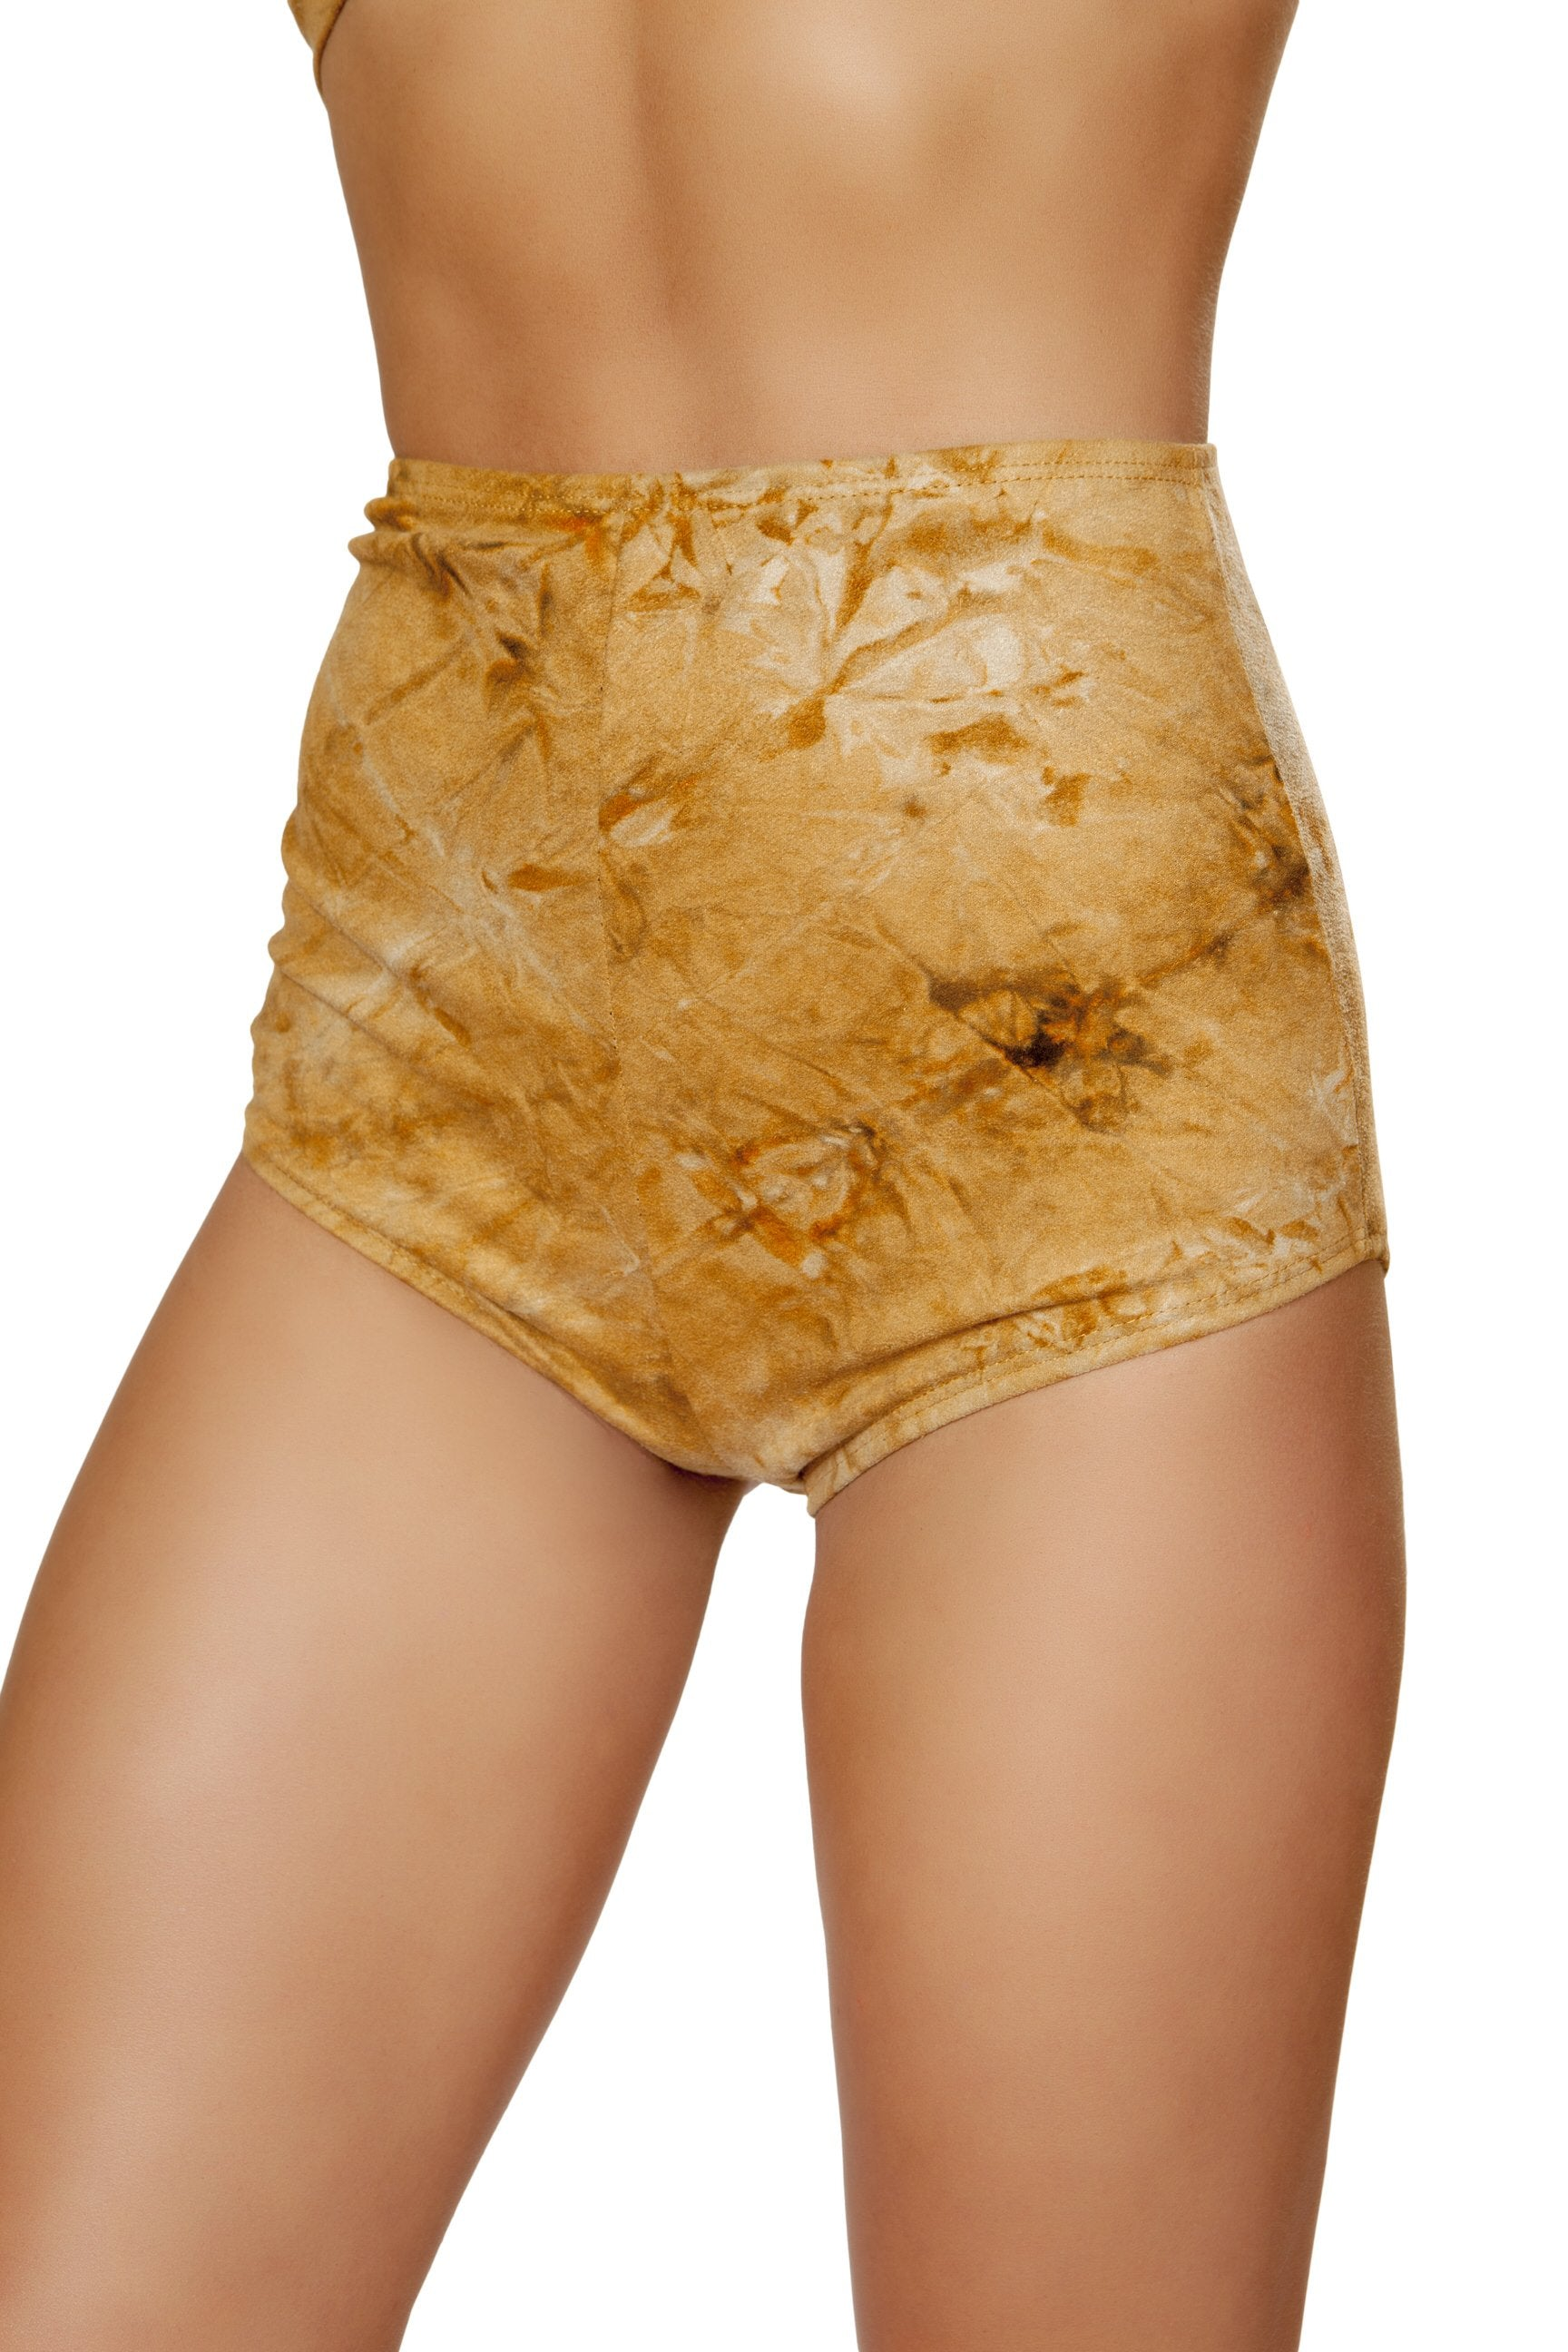 Buy 3586 - 1pc Brown Tie Dye Suede High-Waisted Shorts from Rave Fix for $18.75 with Same Day Shipping Designed by Roma Costume 3586-Brwn-S/M